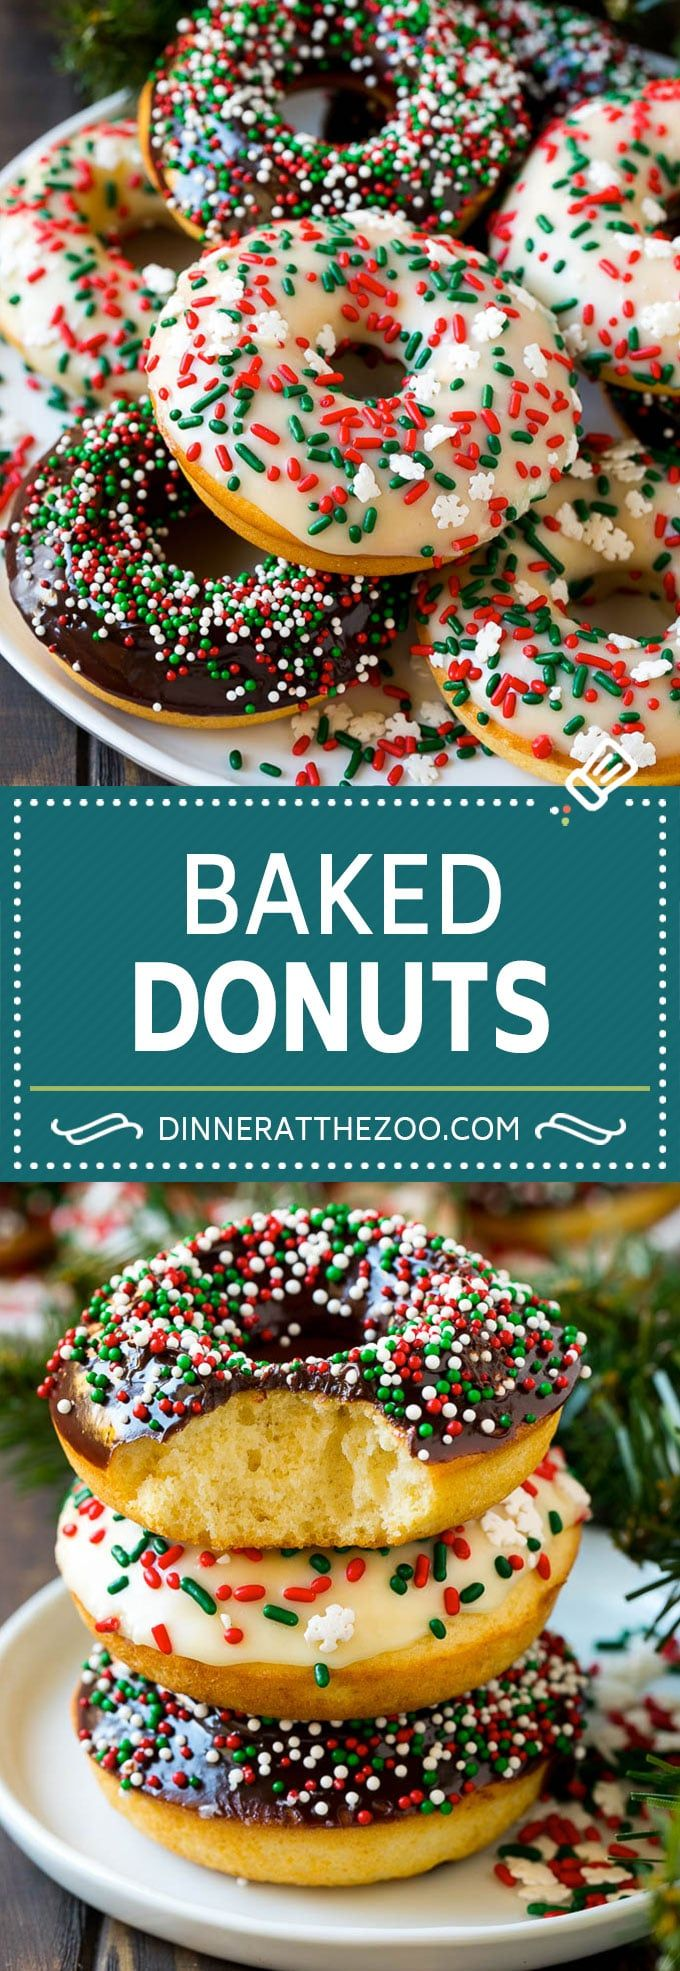 Baked Donuts Recipe | Cake Donuts | Chocolate Donuts | Sprinkle Donuts #donuts #…